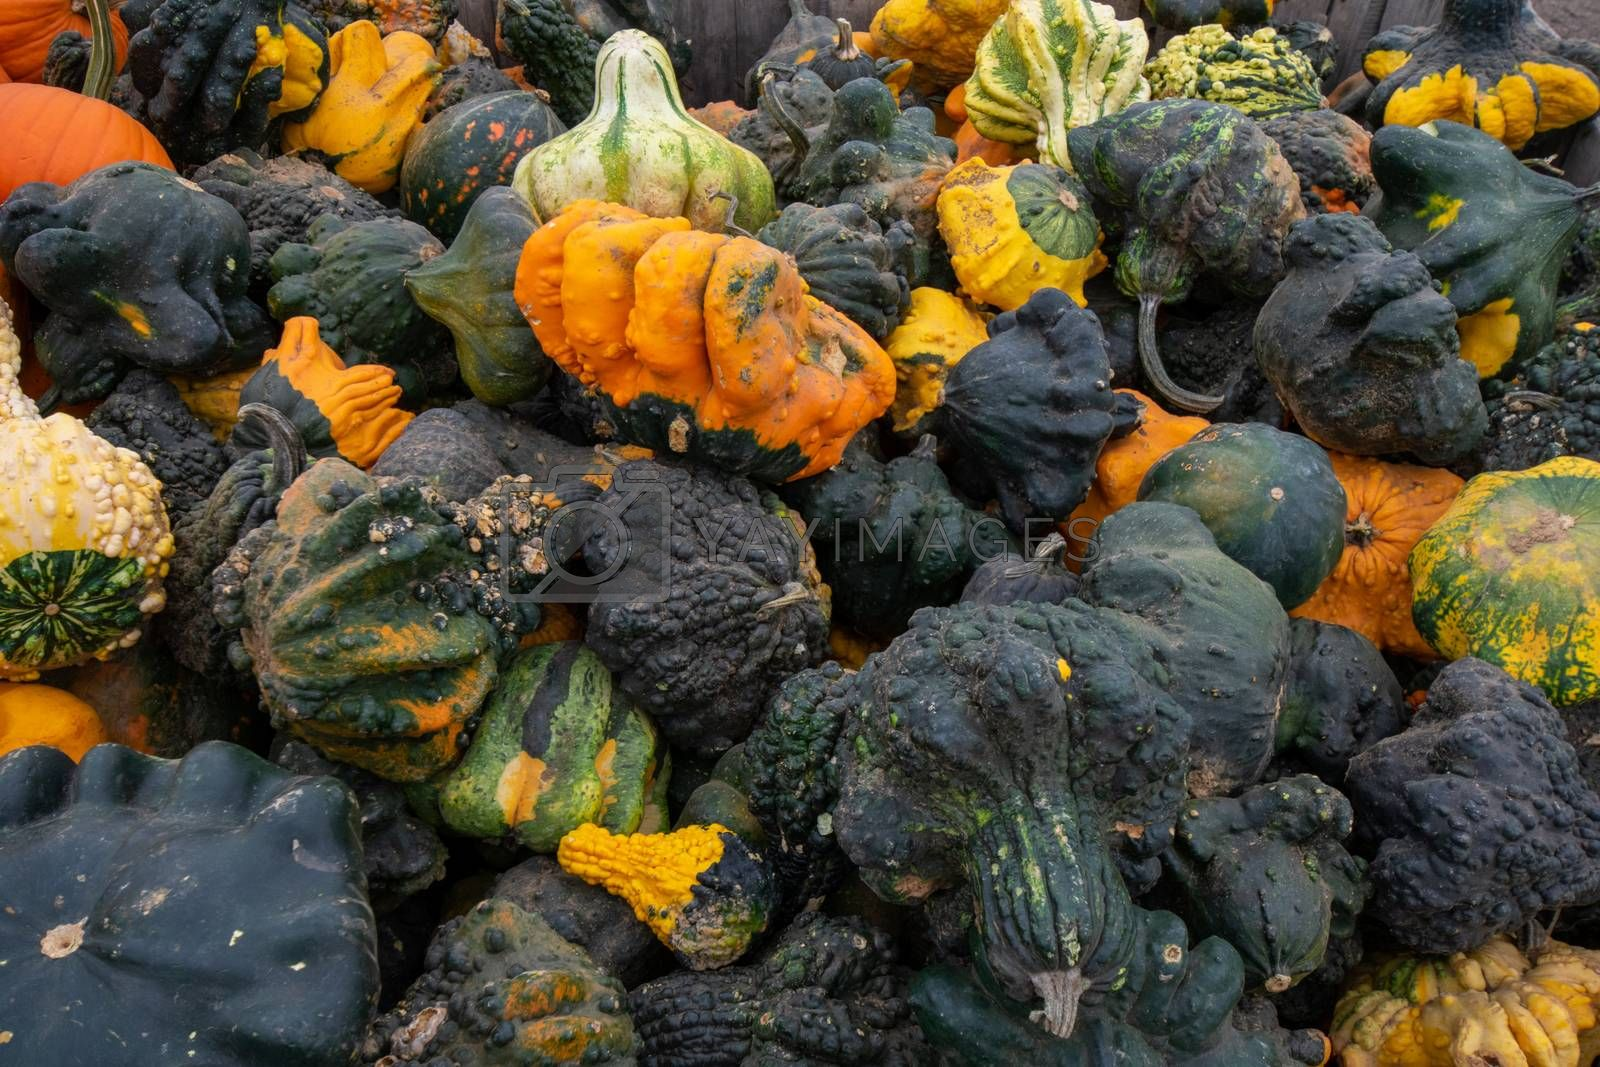 A Pile of Ugly Pumpkins and Squash in Different Colors in a Wooden Crate in a Farmer's Market Filling the Frame